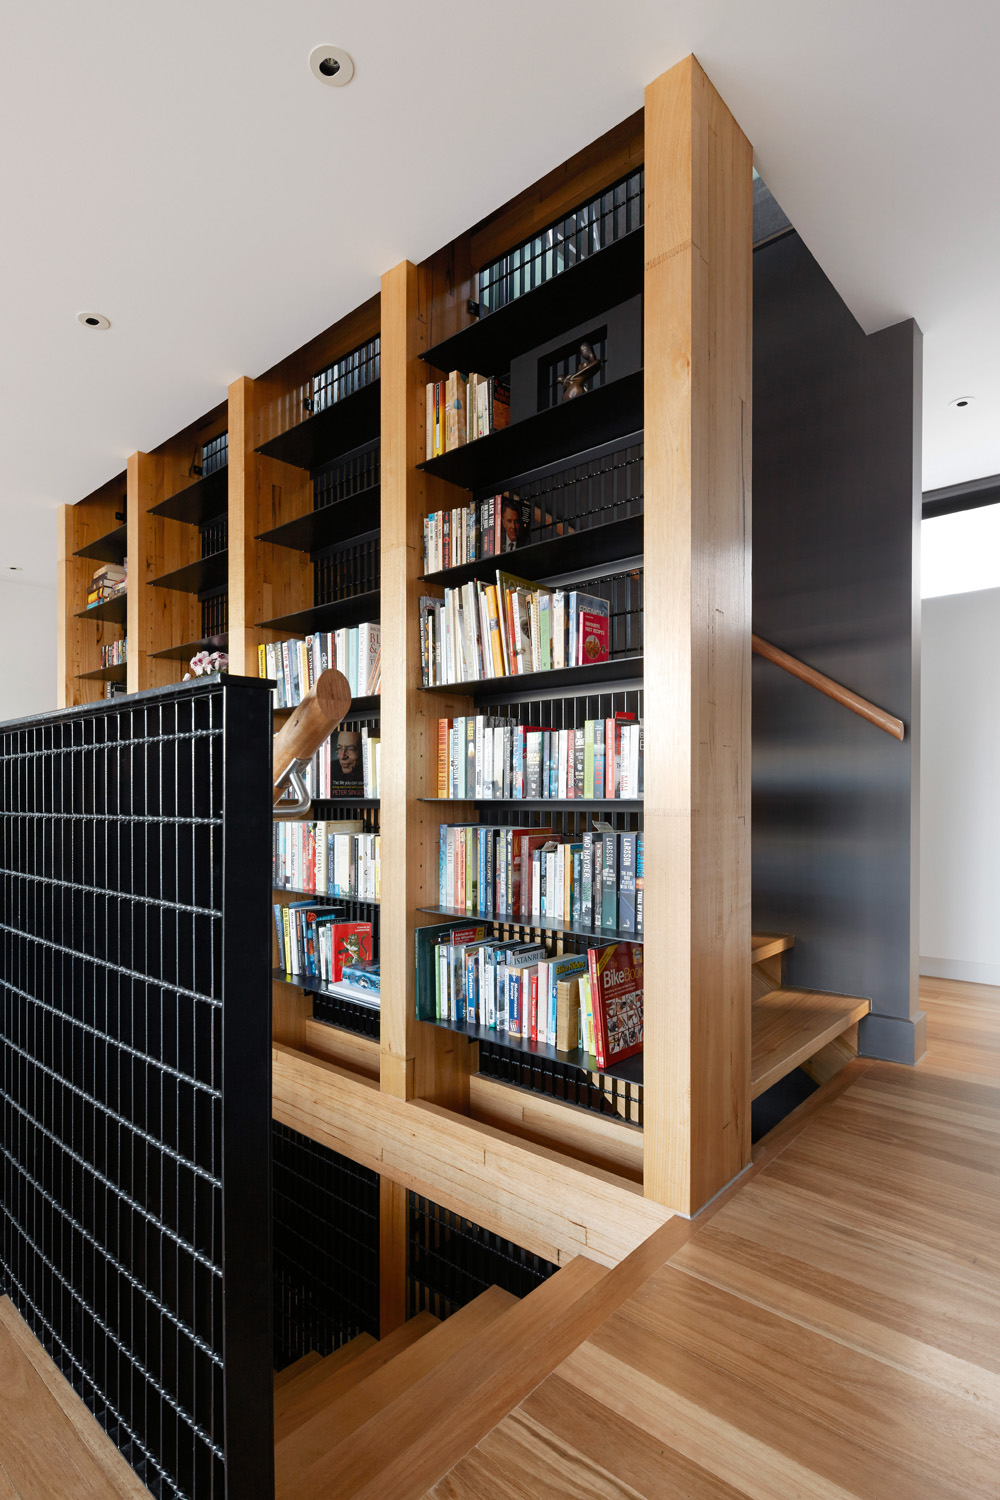 A bookcase between staircases mixes up the space